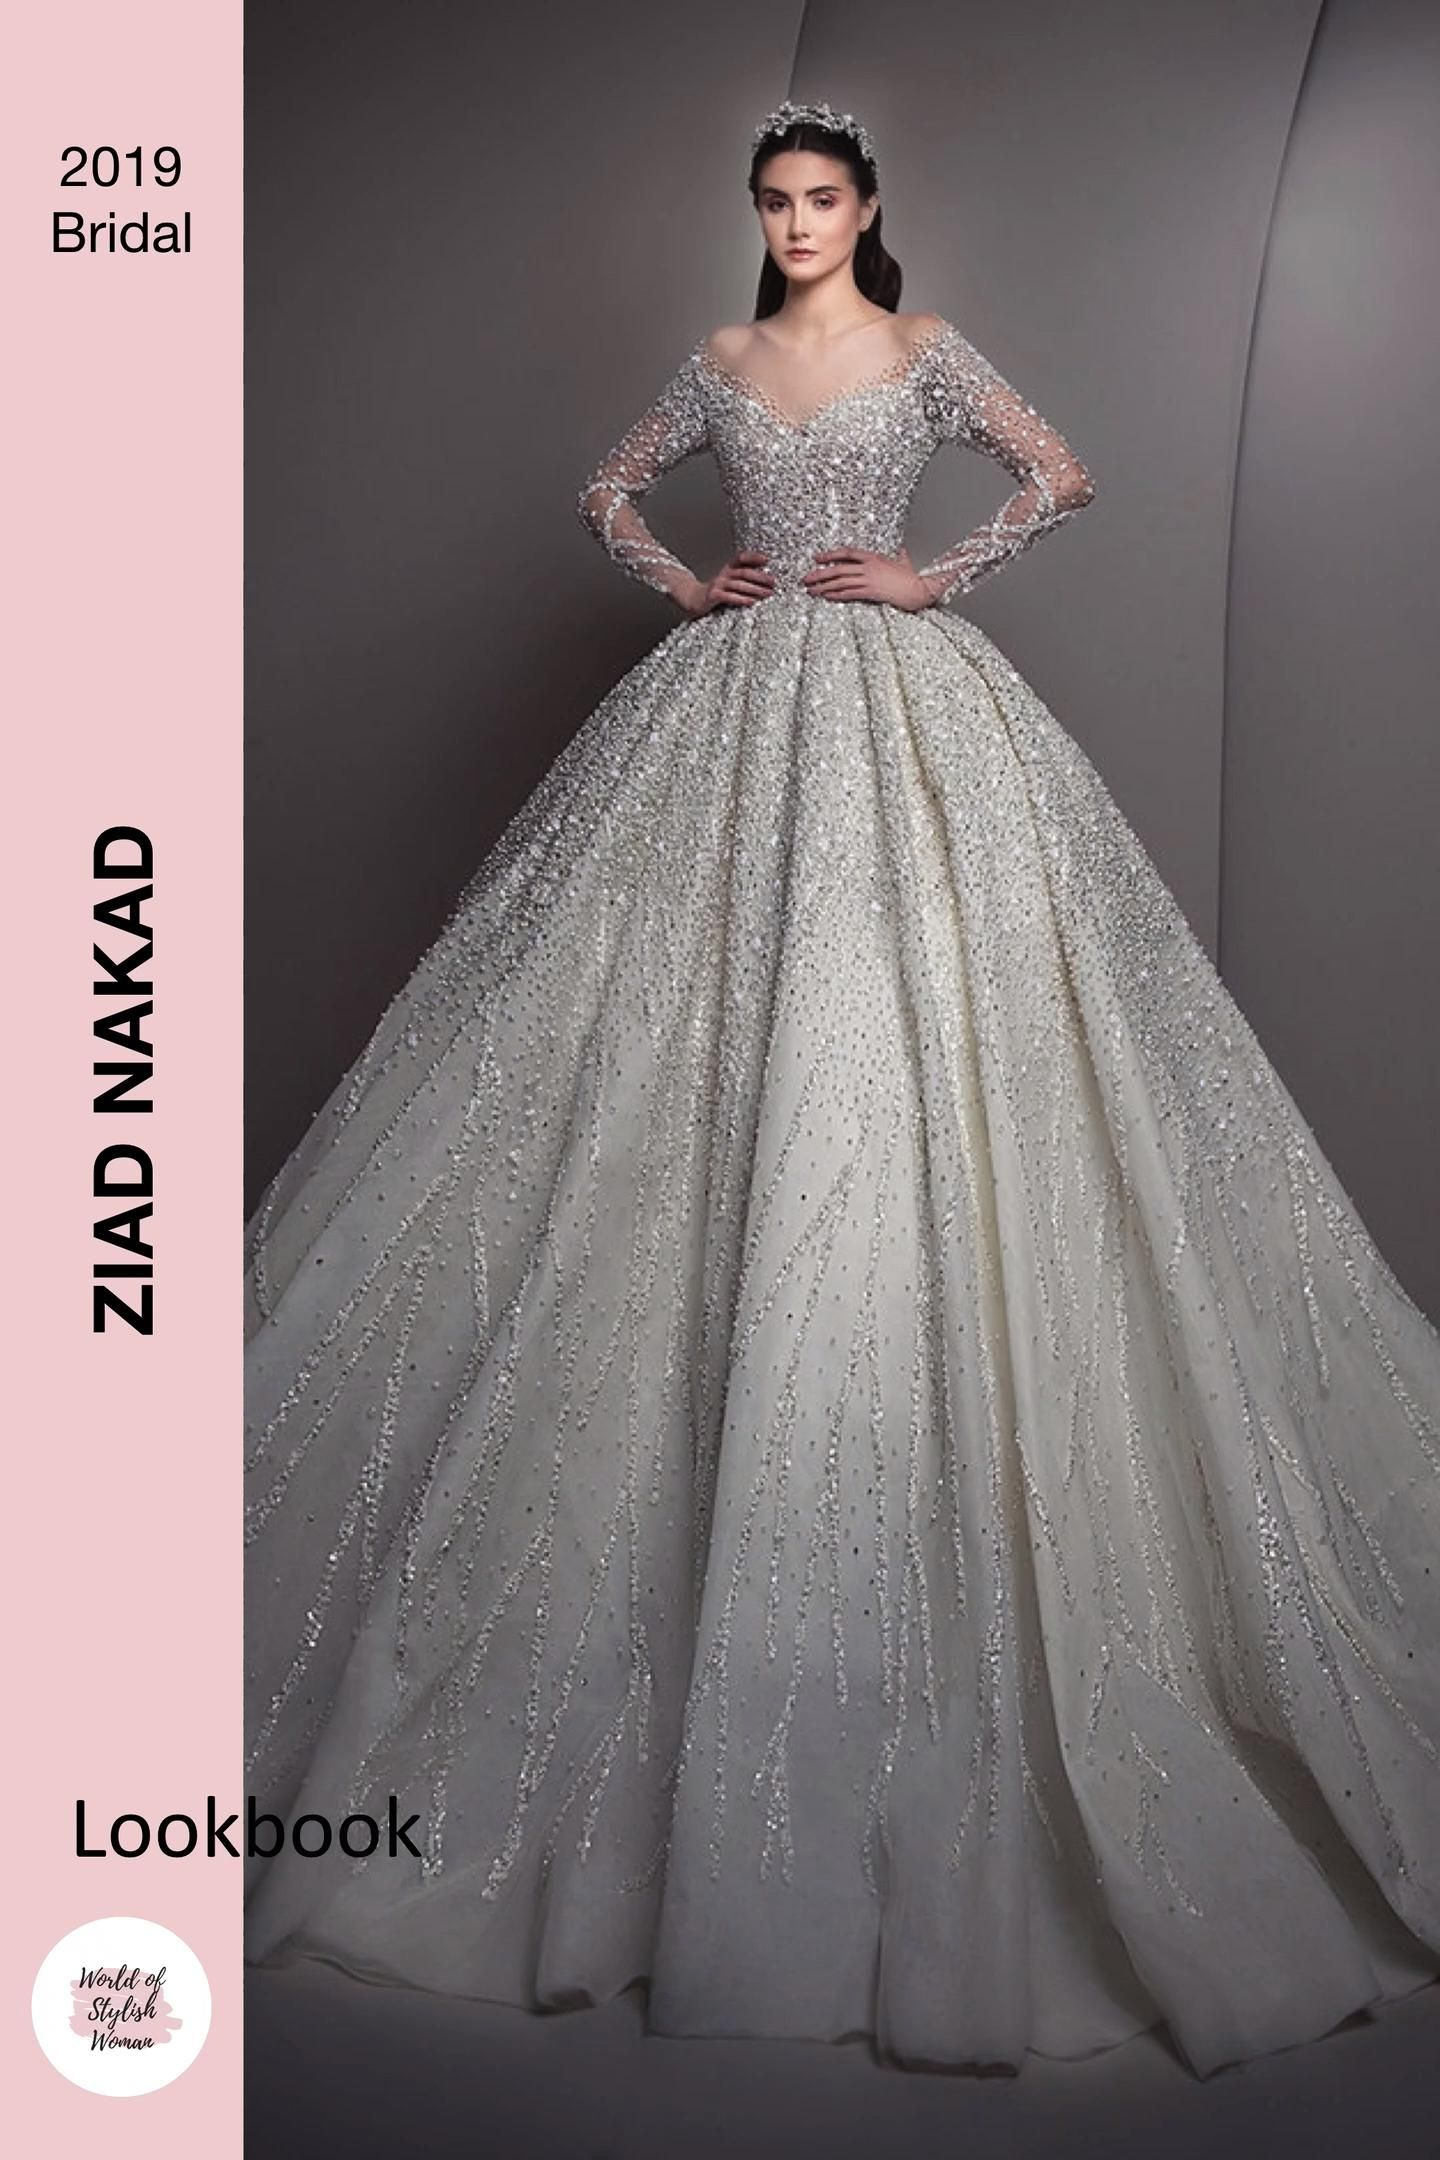 Ziad Nakad Lookbook 2019 Bridal Collection Video Bridal Outfits Empire Wedding Dress Wedding Outfit